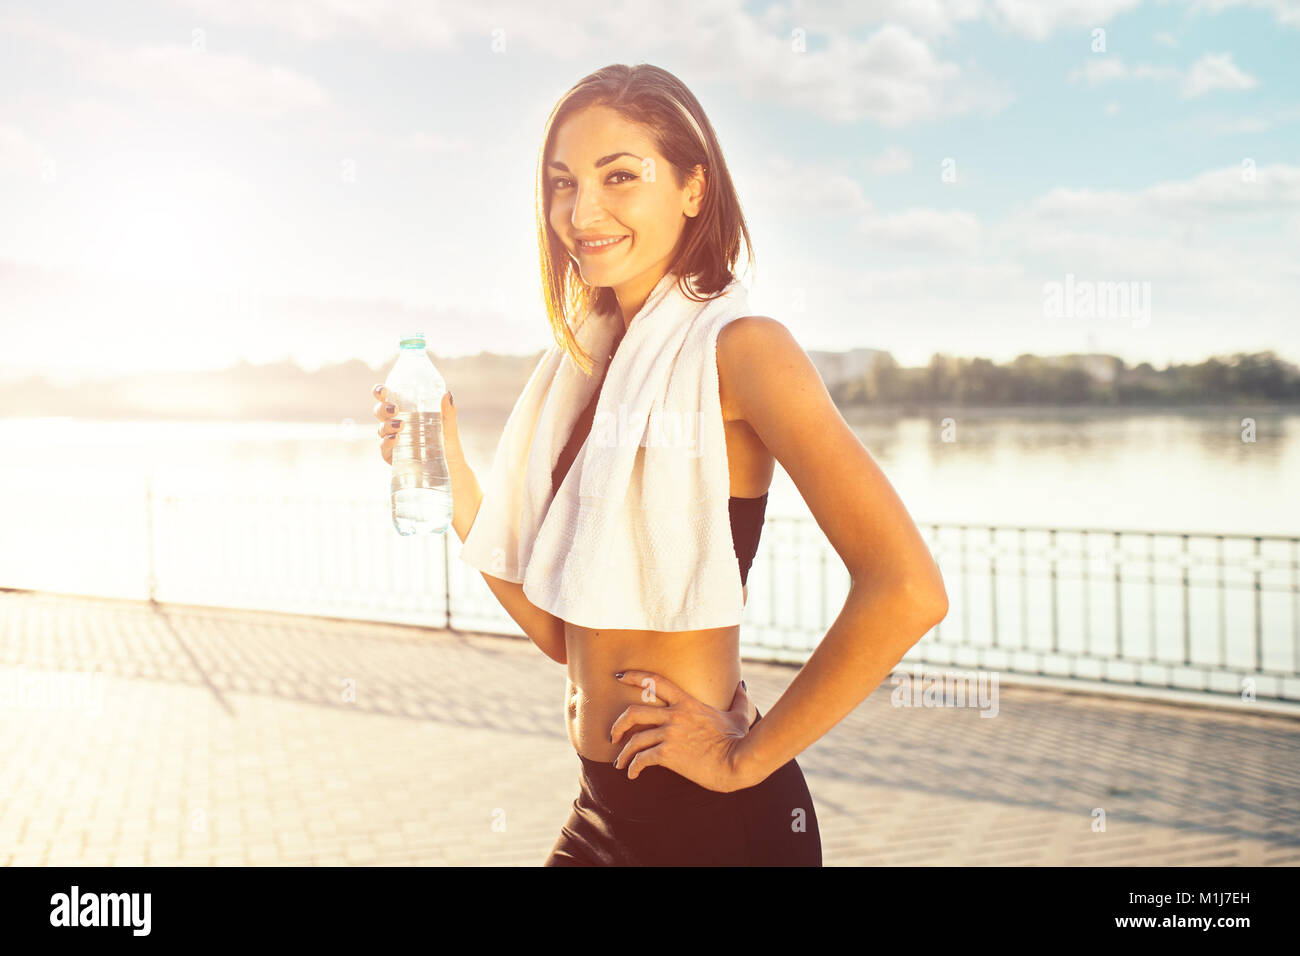 woman holding bottle of water and a towel  - Stock Image